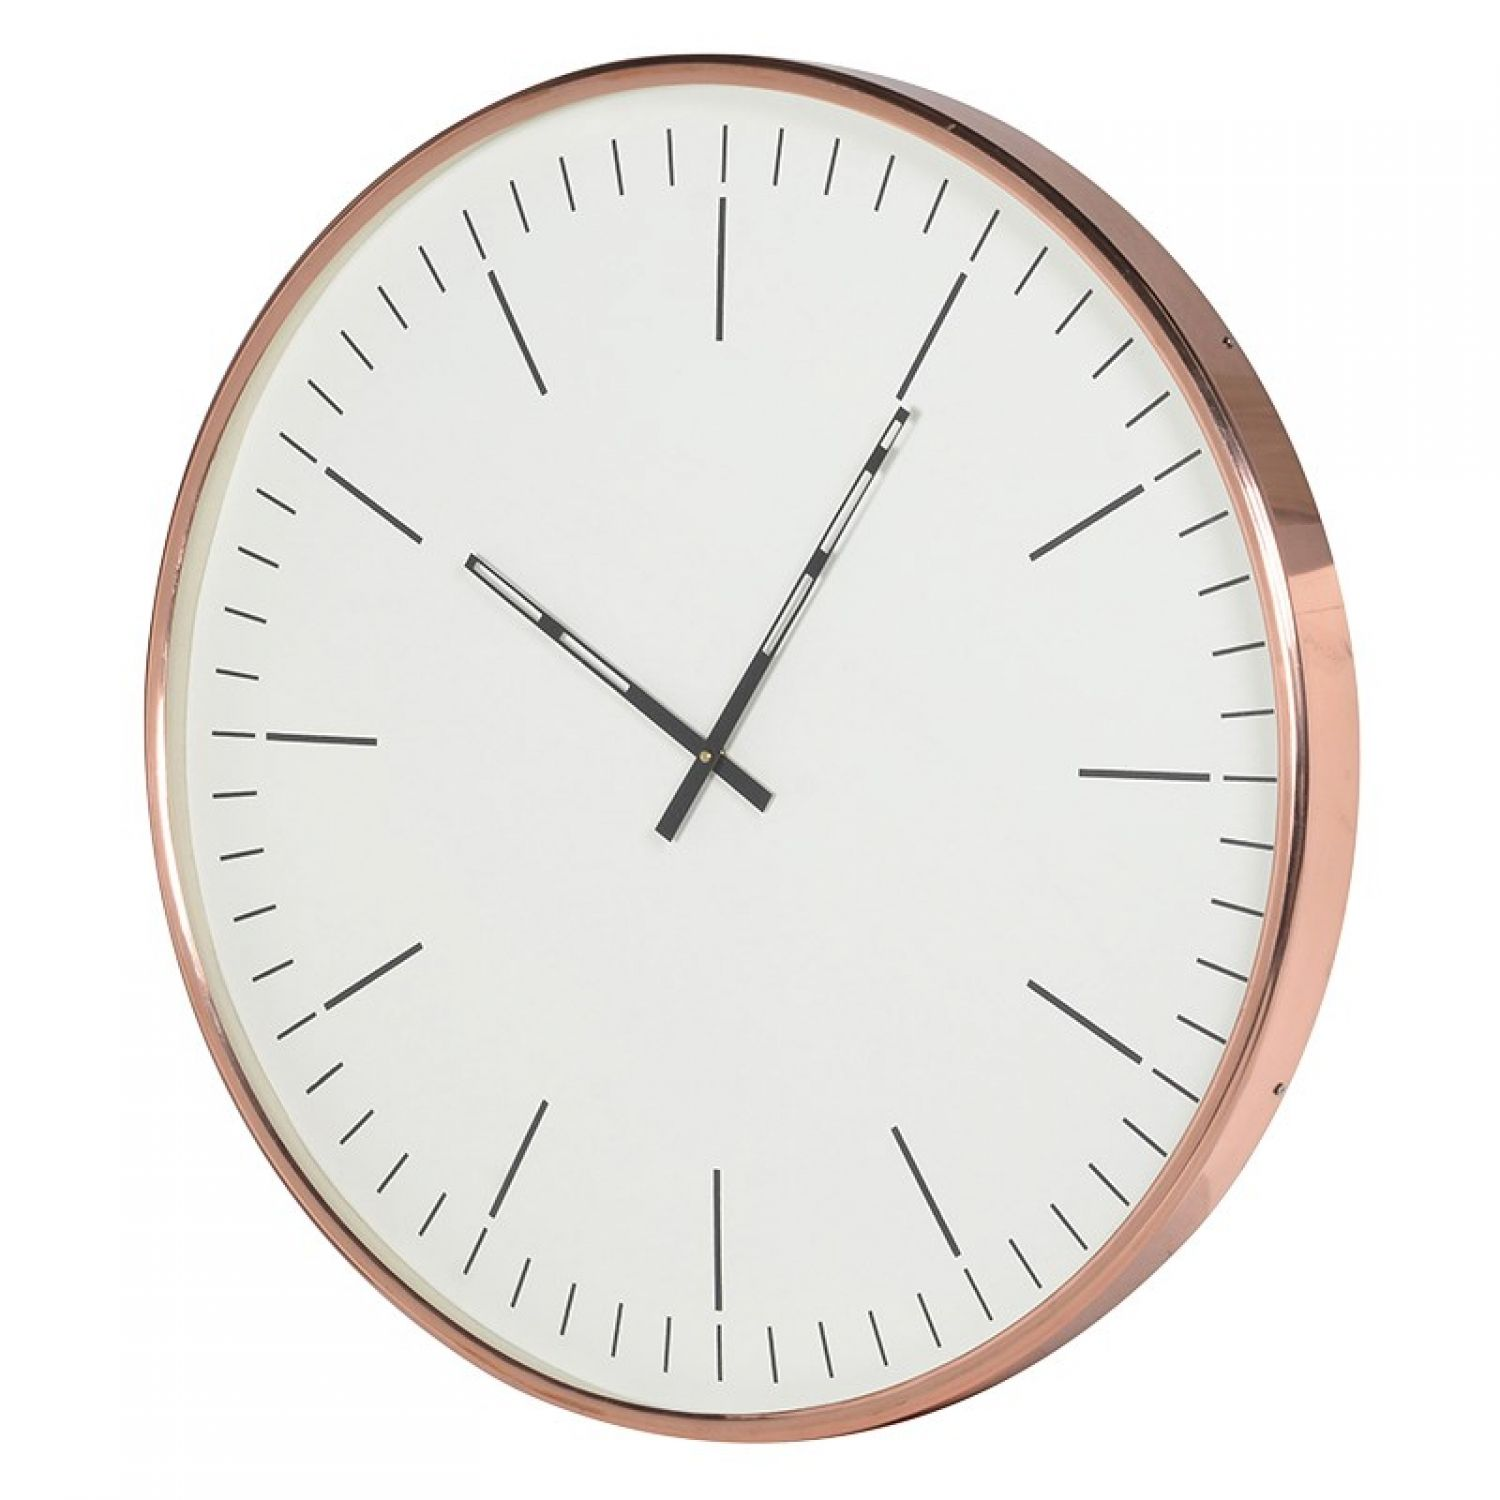 Klein copper wall clock homeware 2017 pinterest copper wall for a simplistic wall clock thats all about style look no further than the klein copper wall clock the clocks face is monochrome and minimalist amipublicfo Images